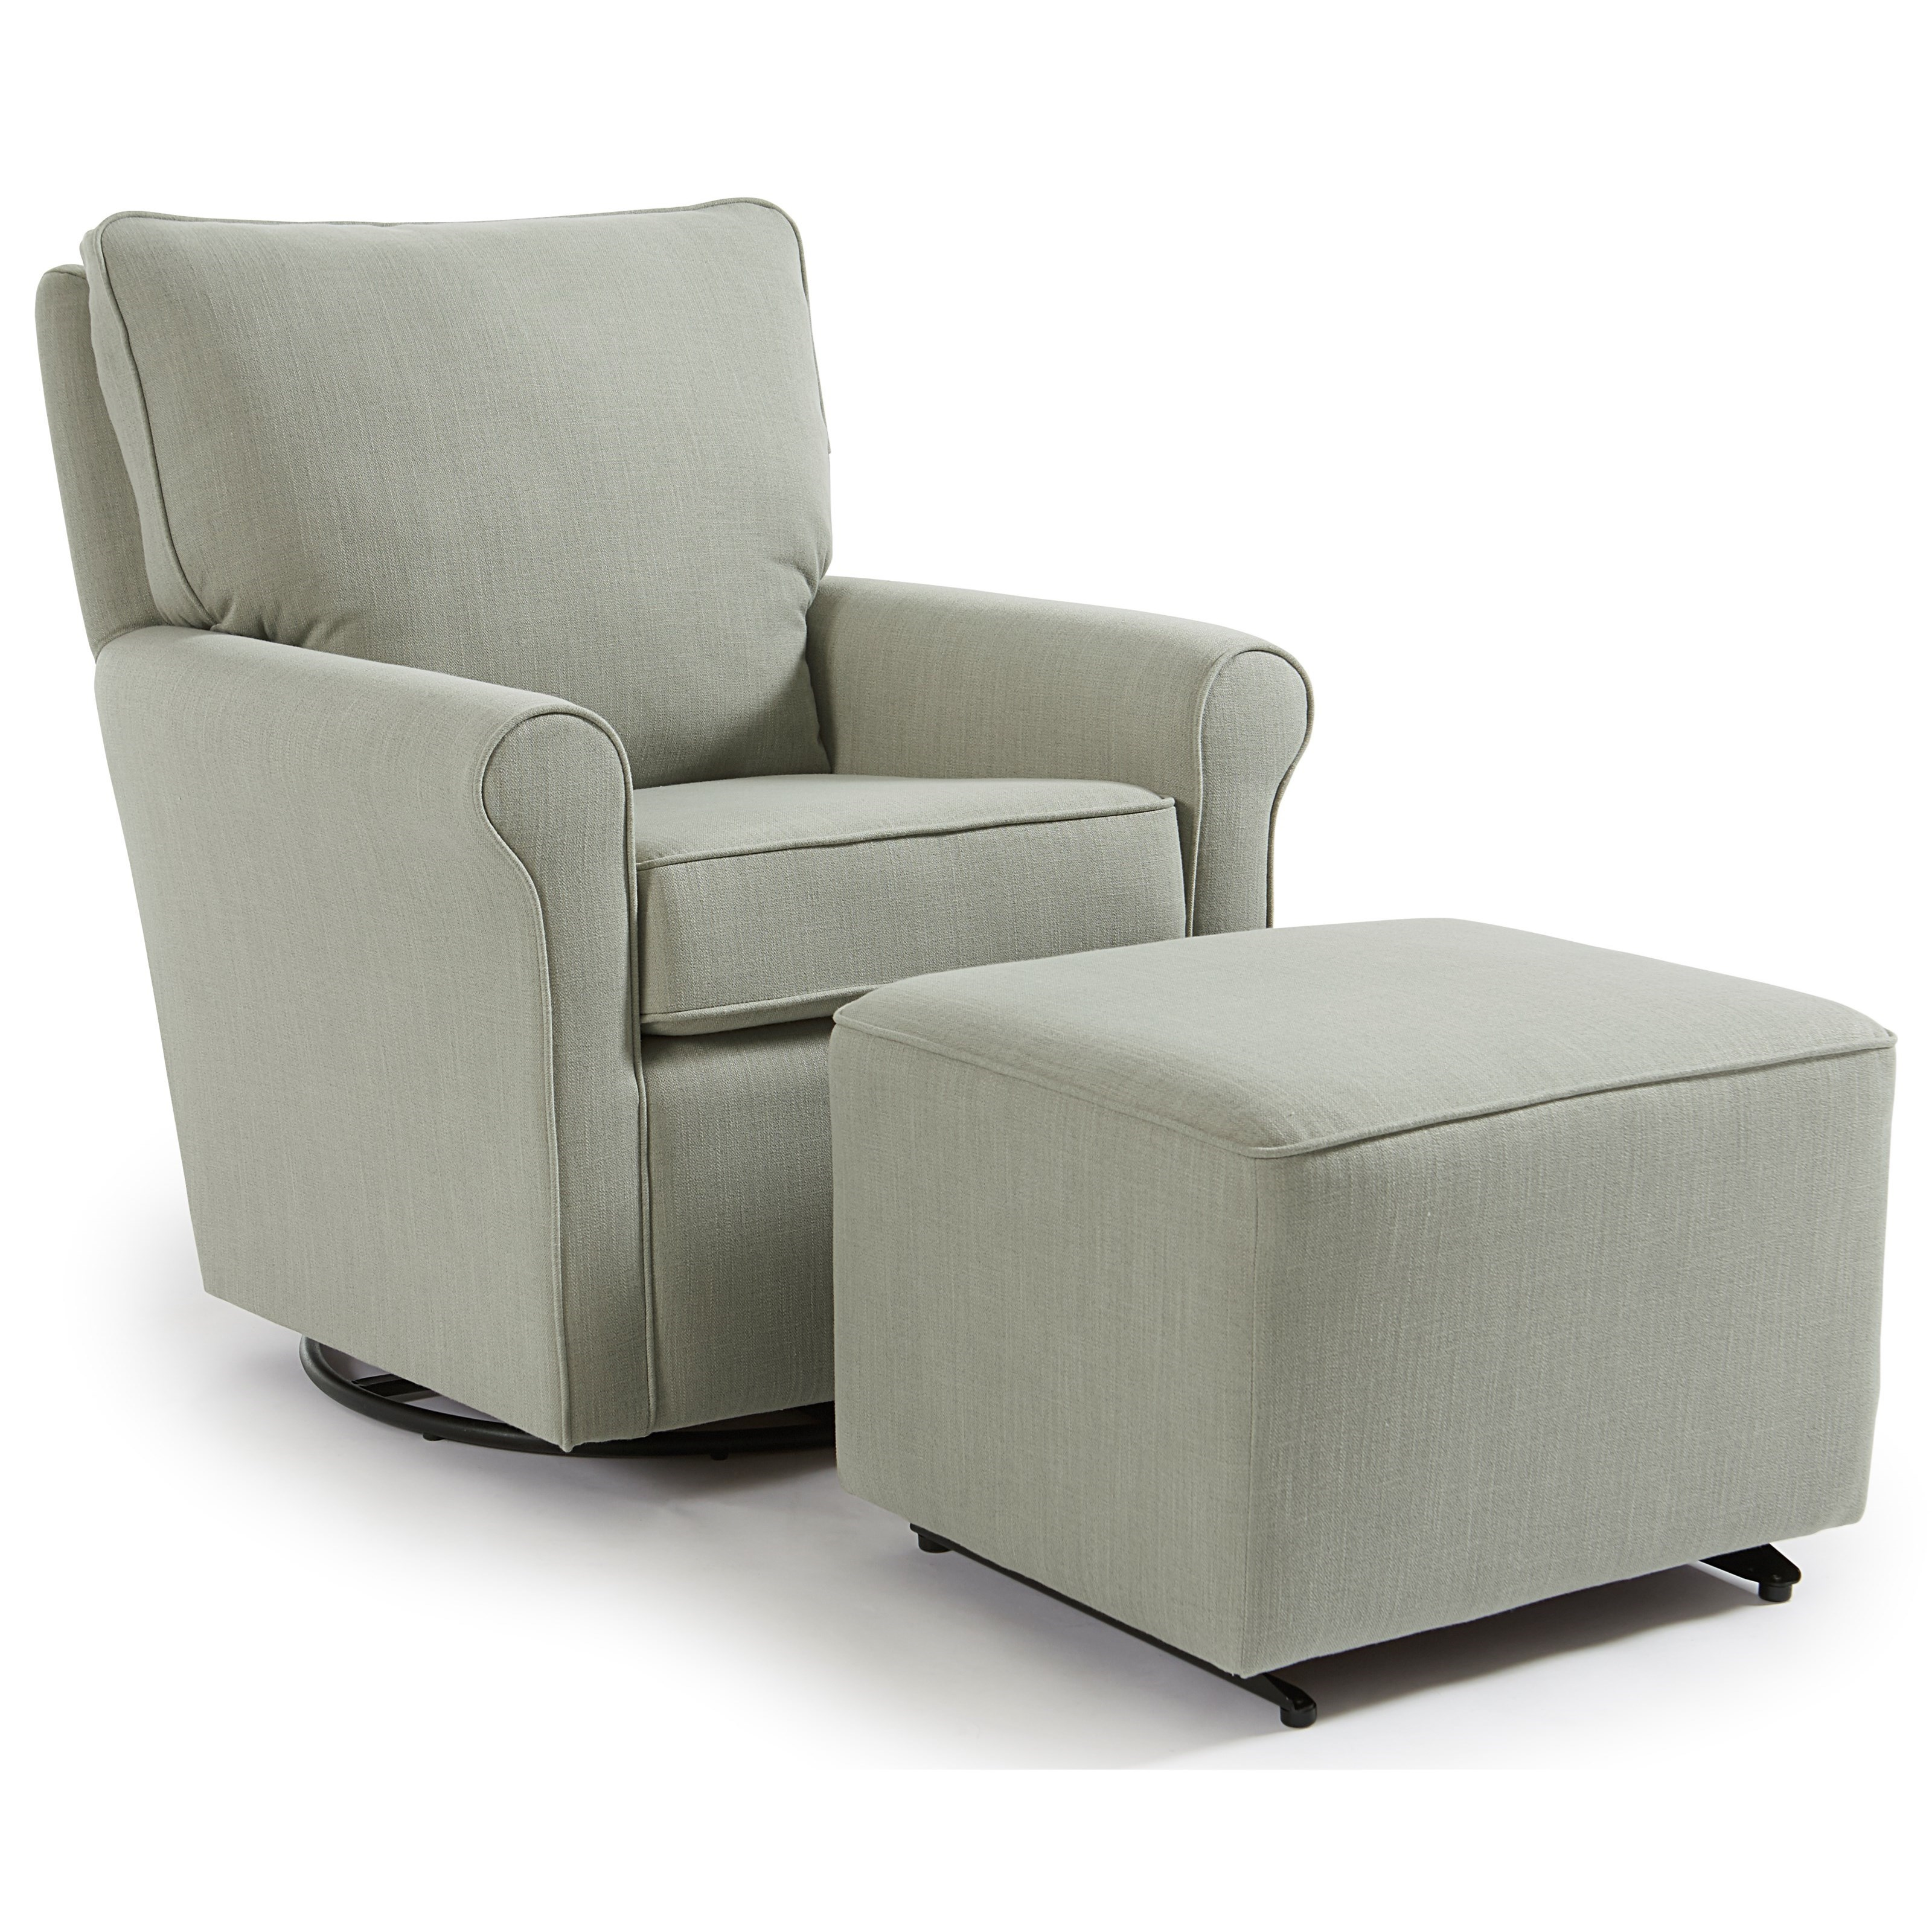 Casual Swivel Glider Chair And Ottoman By Best Home